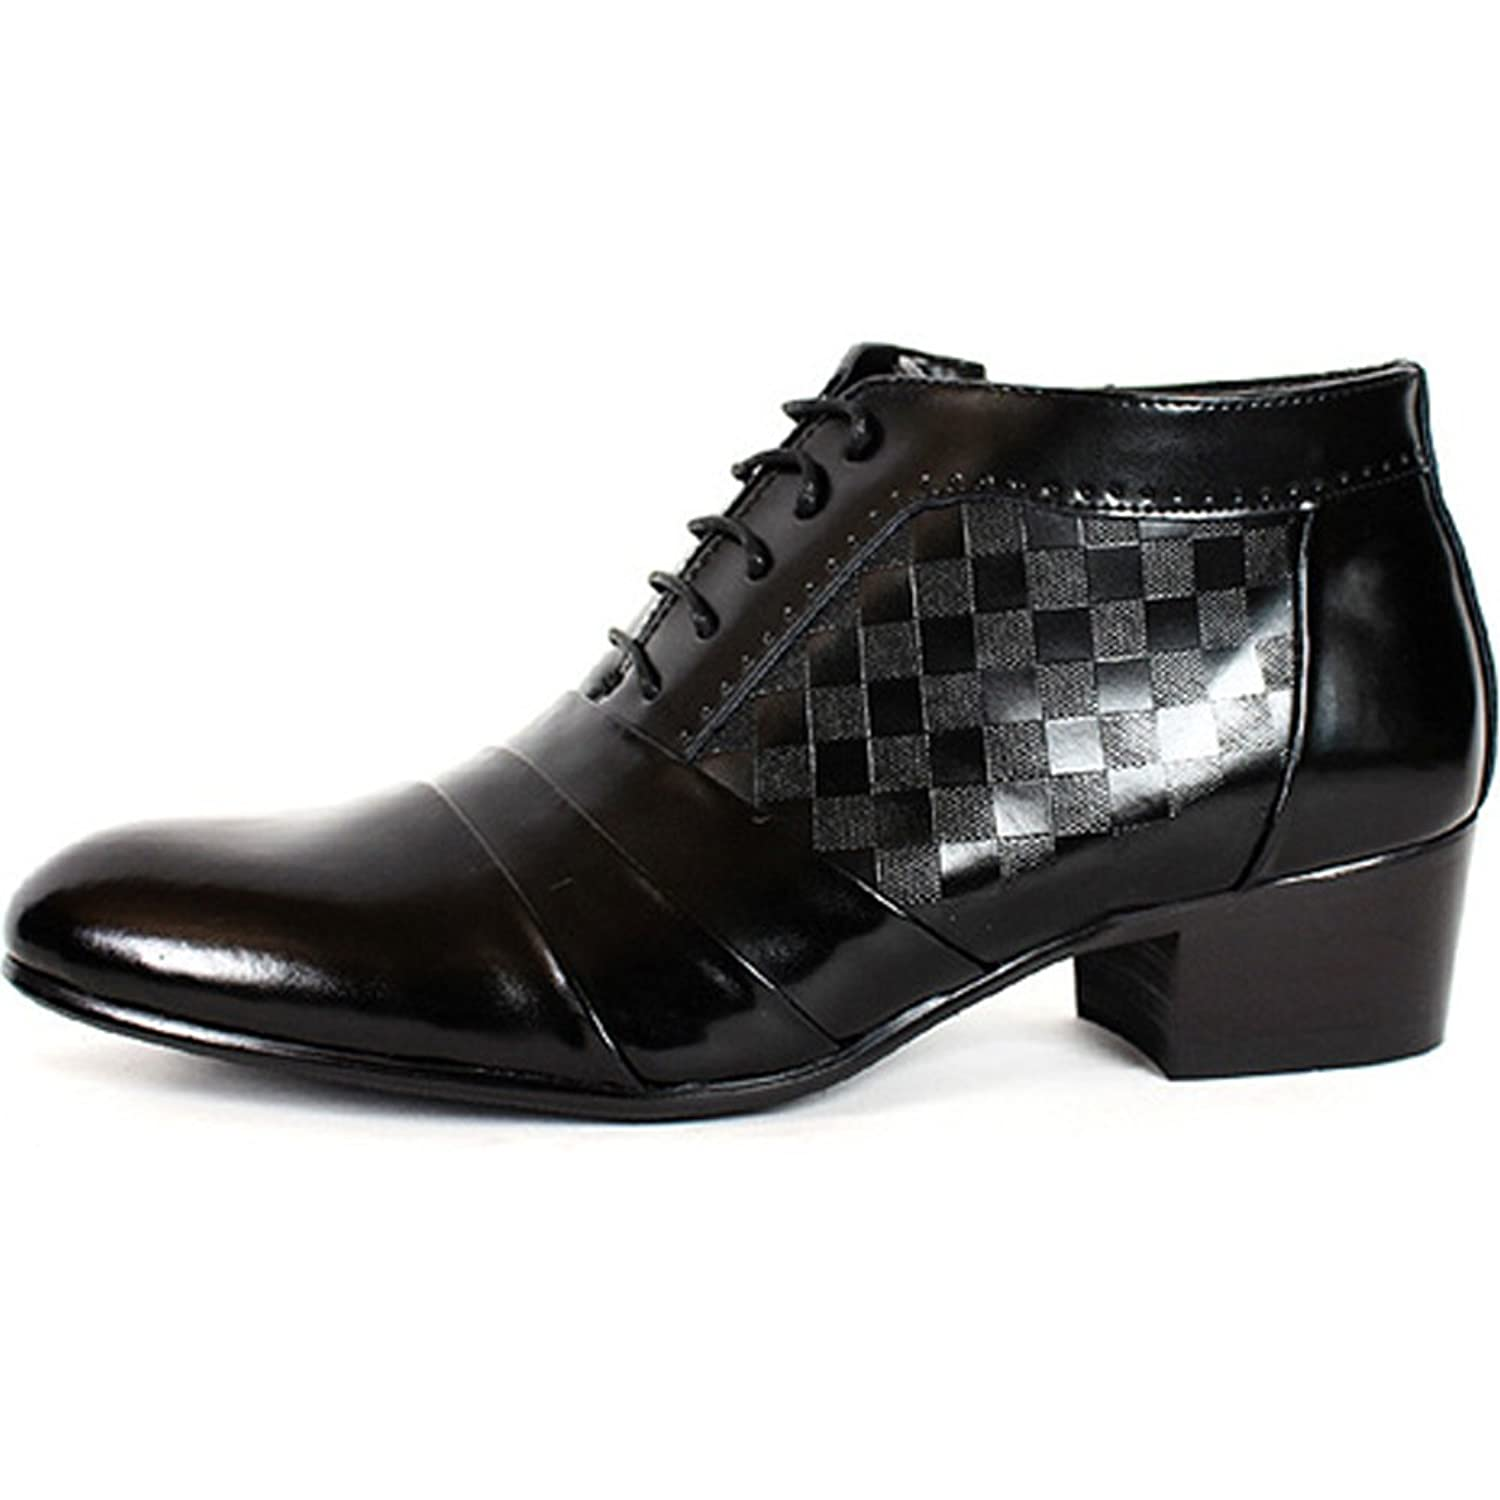 EpicStep Mens Simple Dress Formal Business Genuine Leather Lace Up Tall Up Elevator Oxfords Shoes  VDNF2RSPR